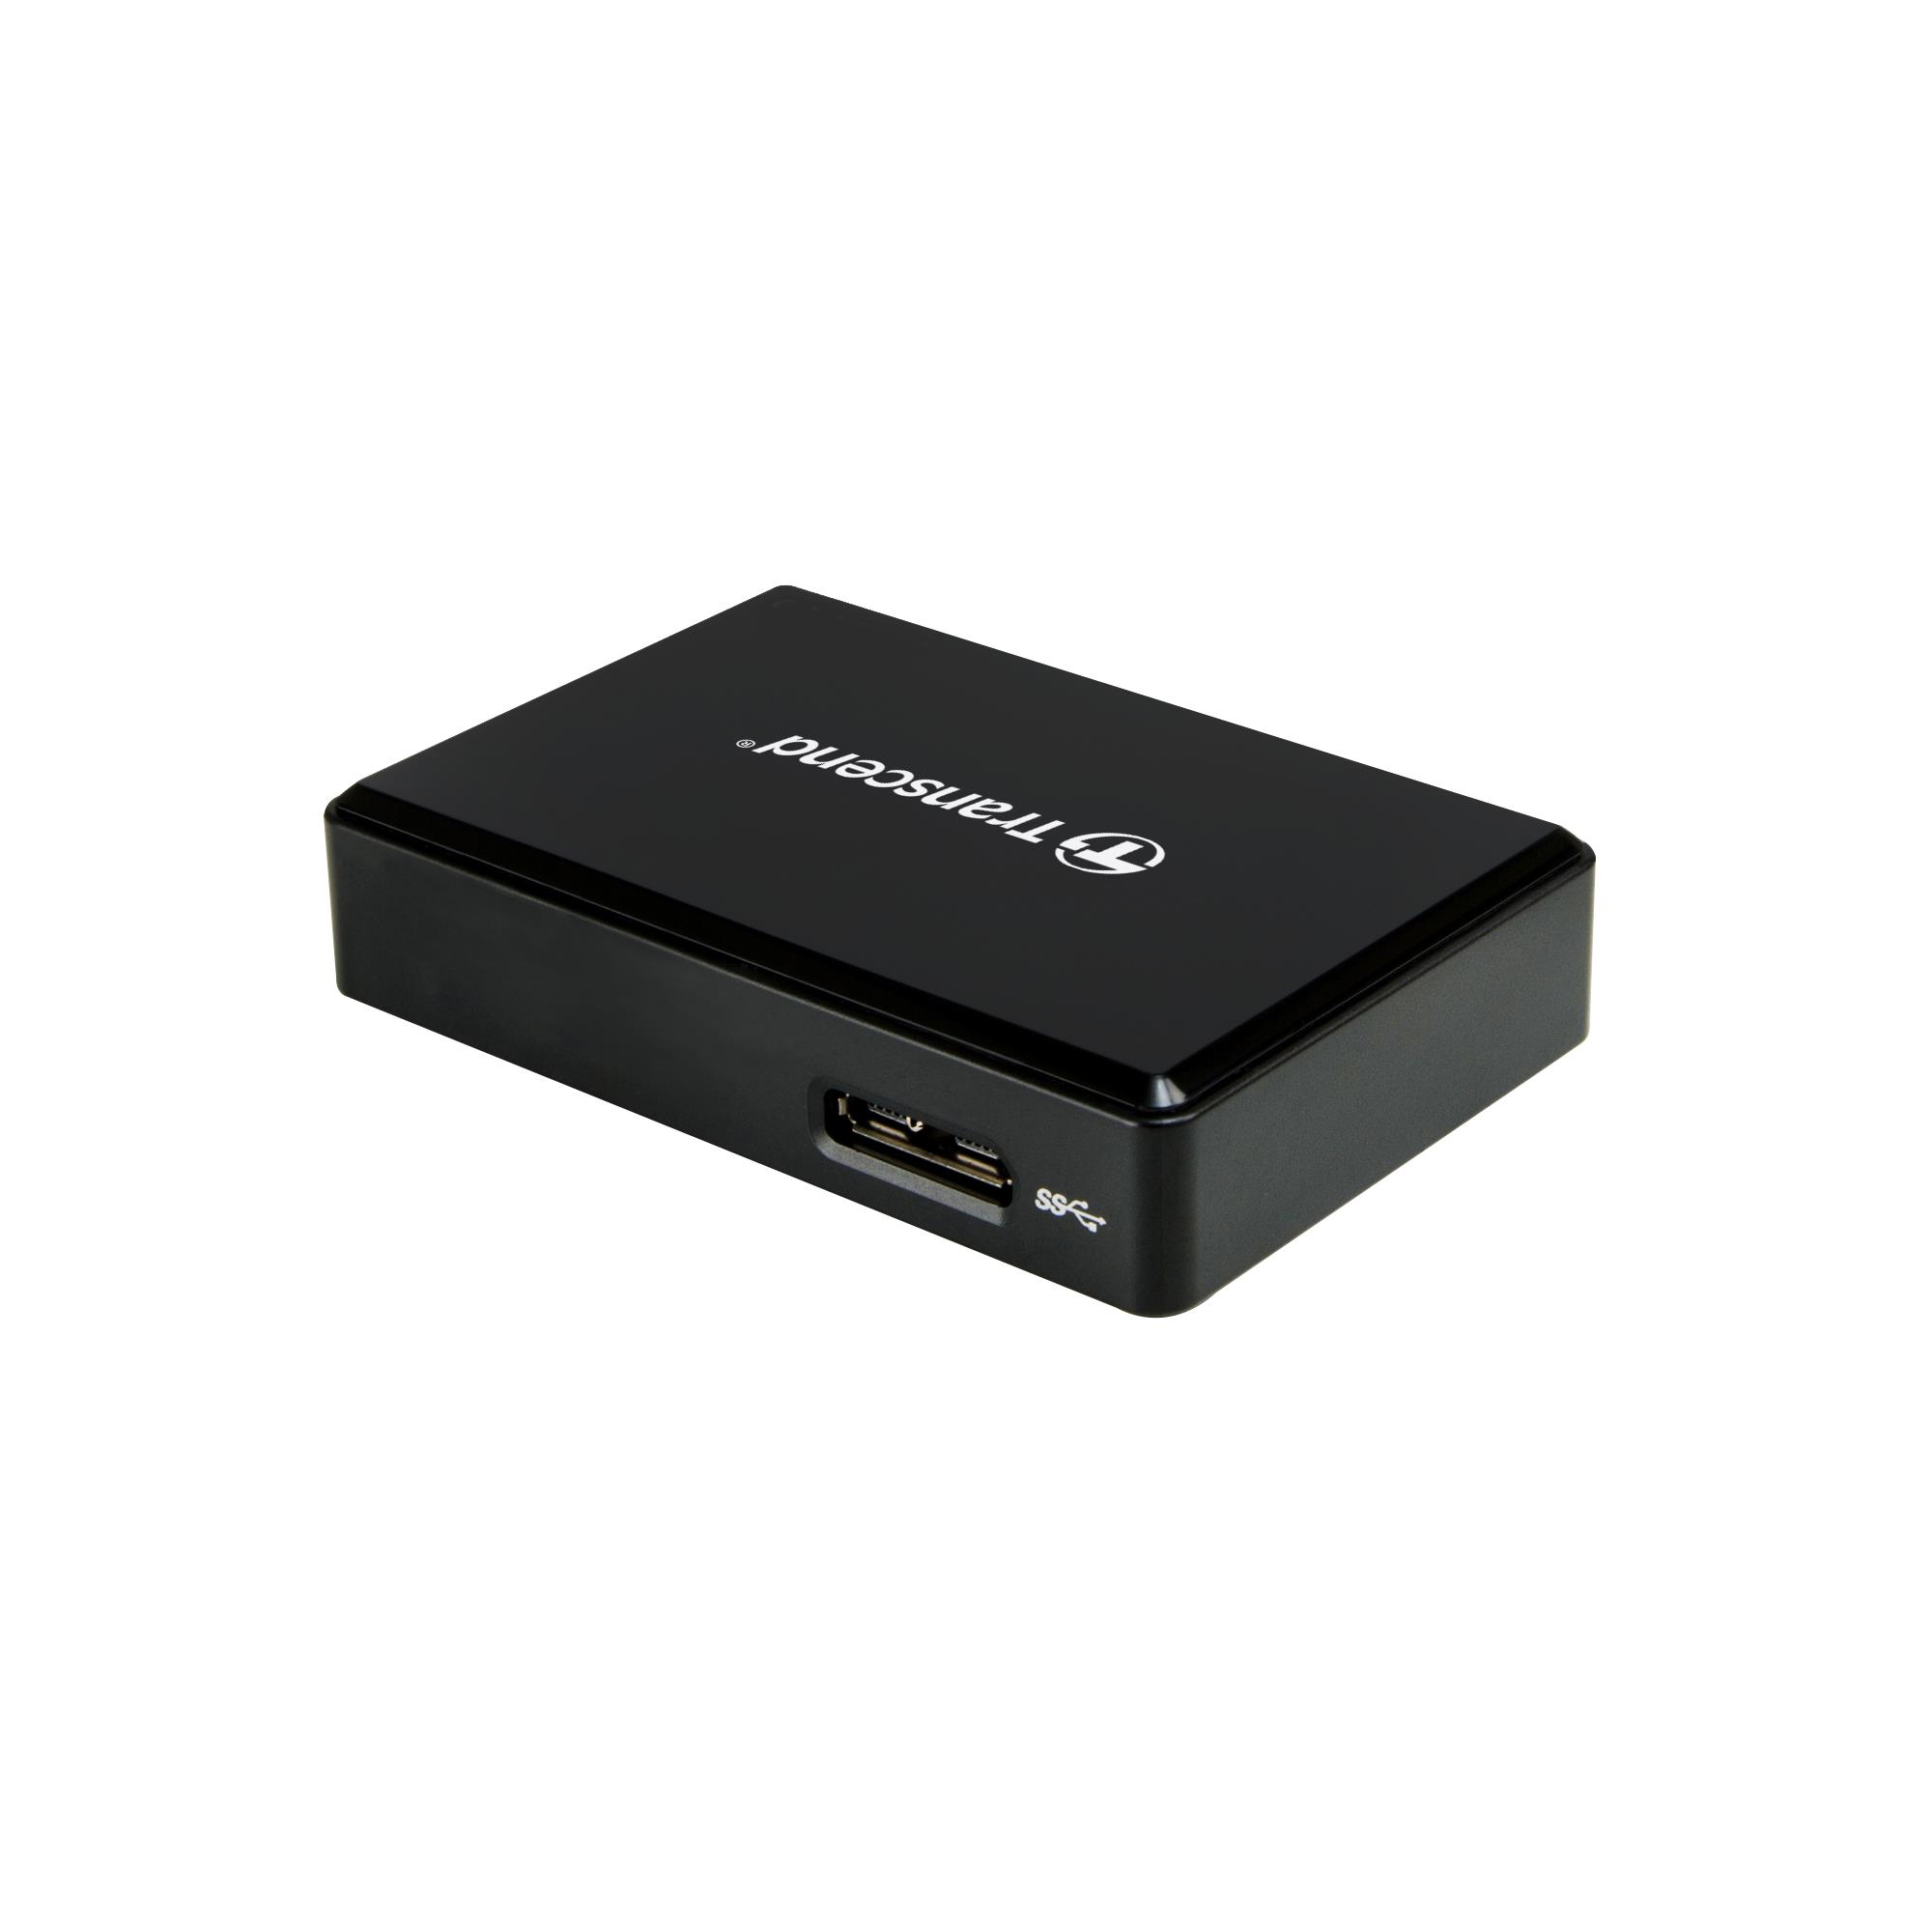 TRANSCEND Gen1 All-in-1 UHS-II Multi Card Reader RDF9K2, USB 3.1, Black